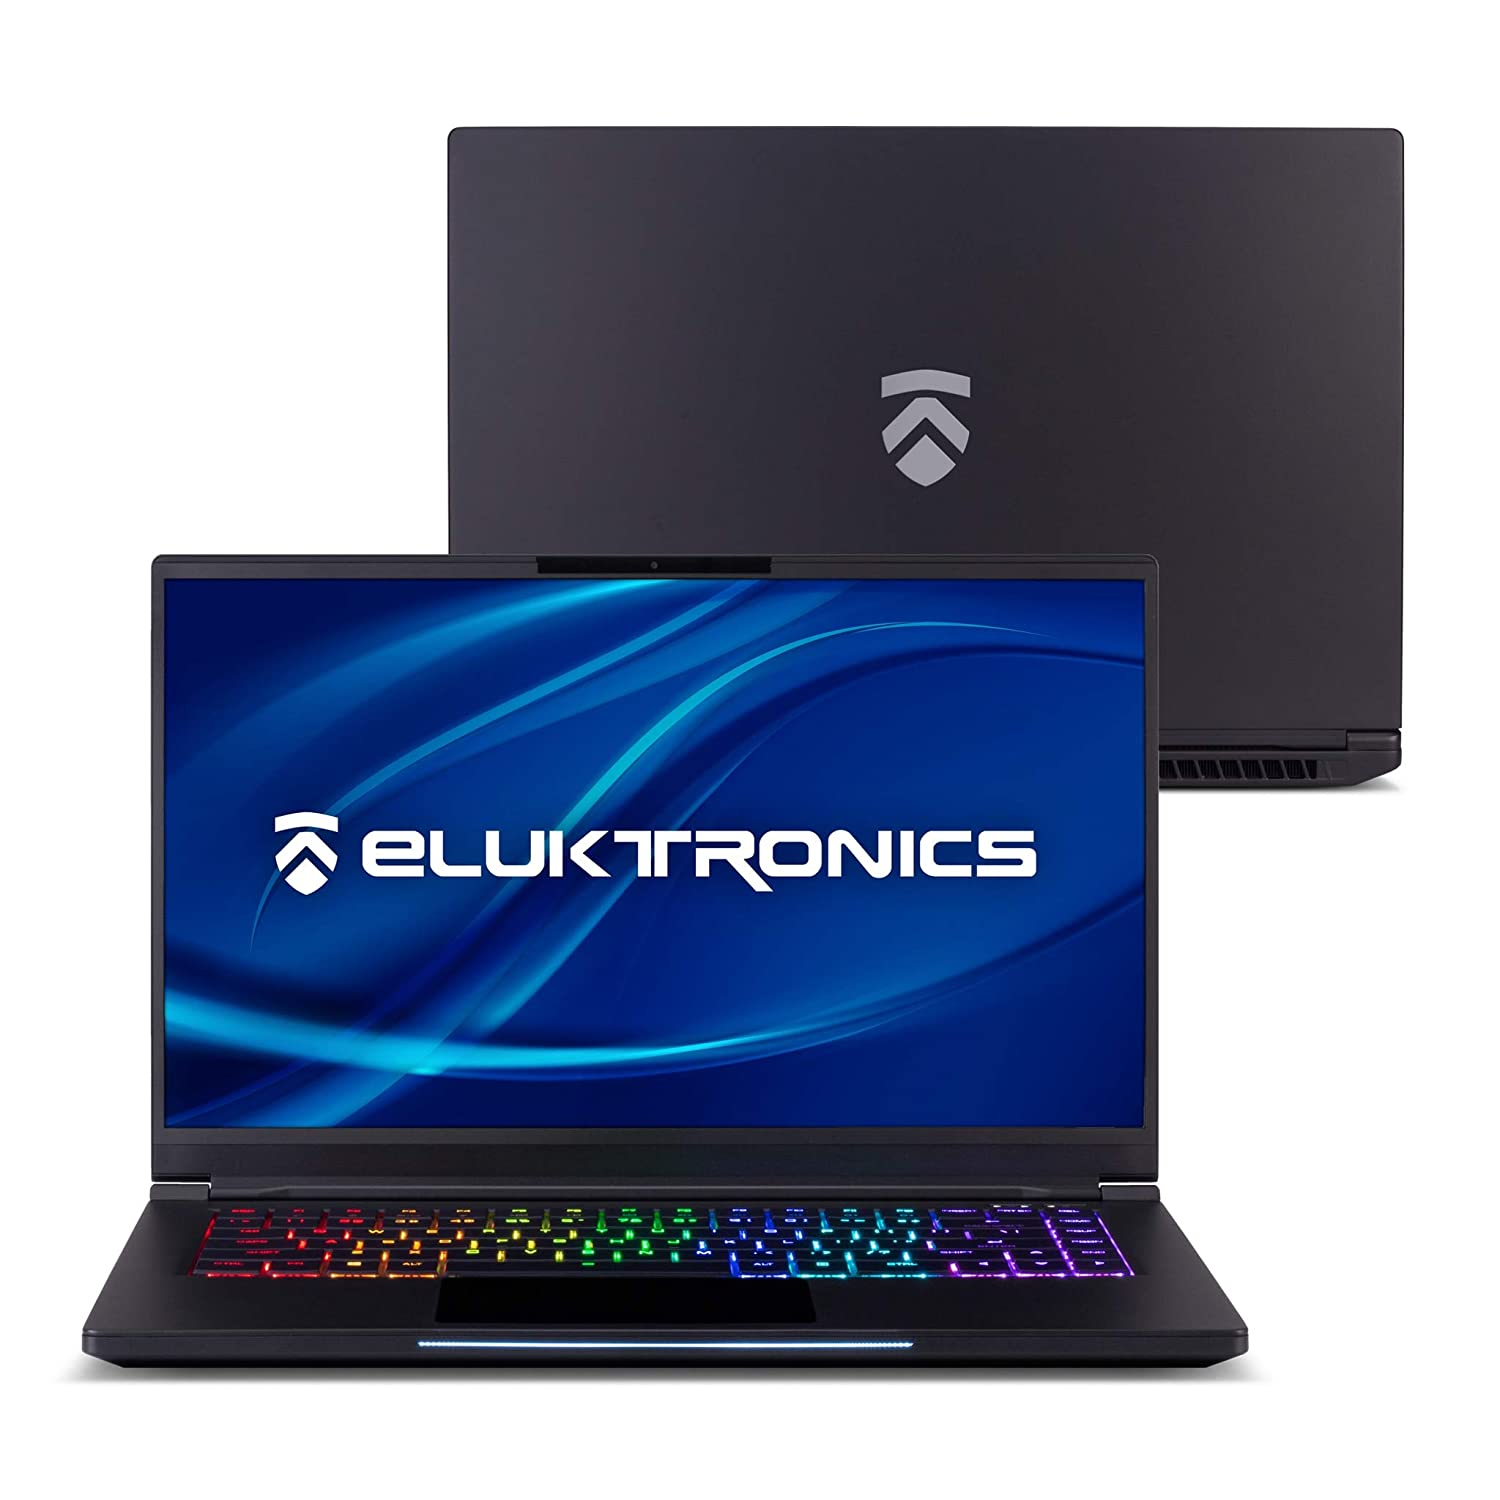 Eluktronics MAG-15 Slim Ultra Light NVIDIA GeForce GTX 1660Ti Gaming Laptop with Mechanical RGB Keyboard – Intel i7-9750H CPU 6GB GDDR6 VR Ready GPU 15.6 144Hz Full HD IPS 1TB NVMe SSD 32GB RAM